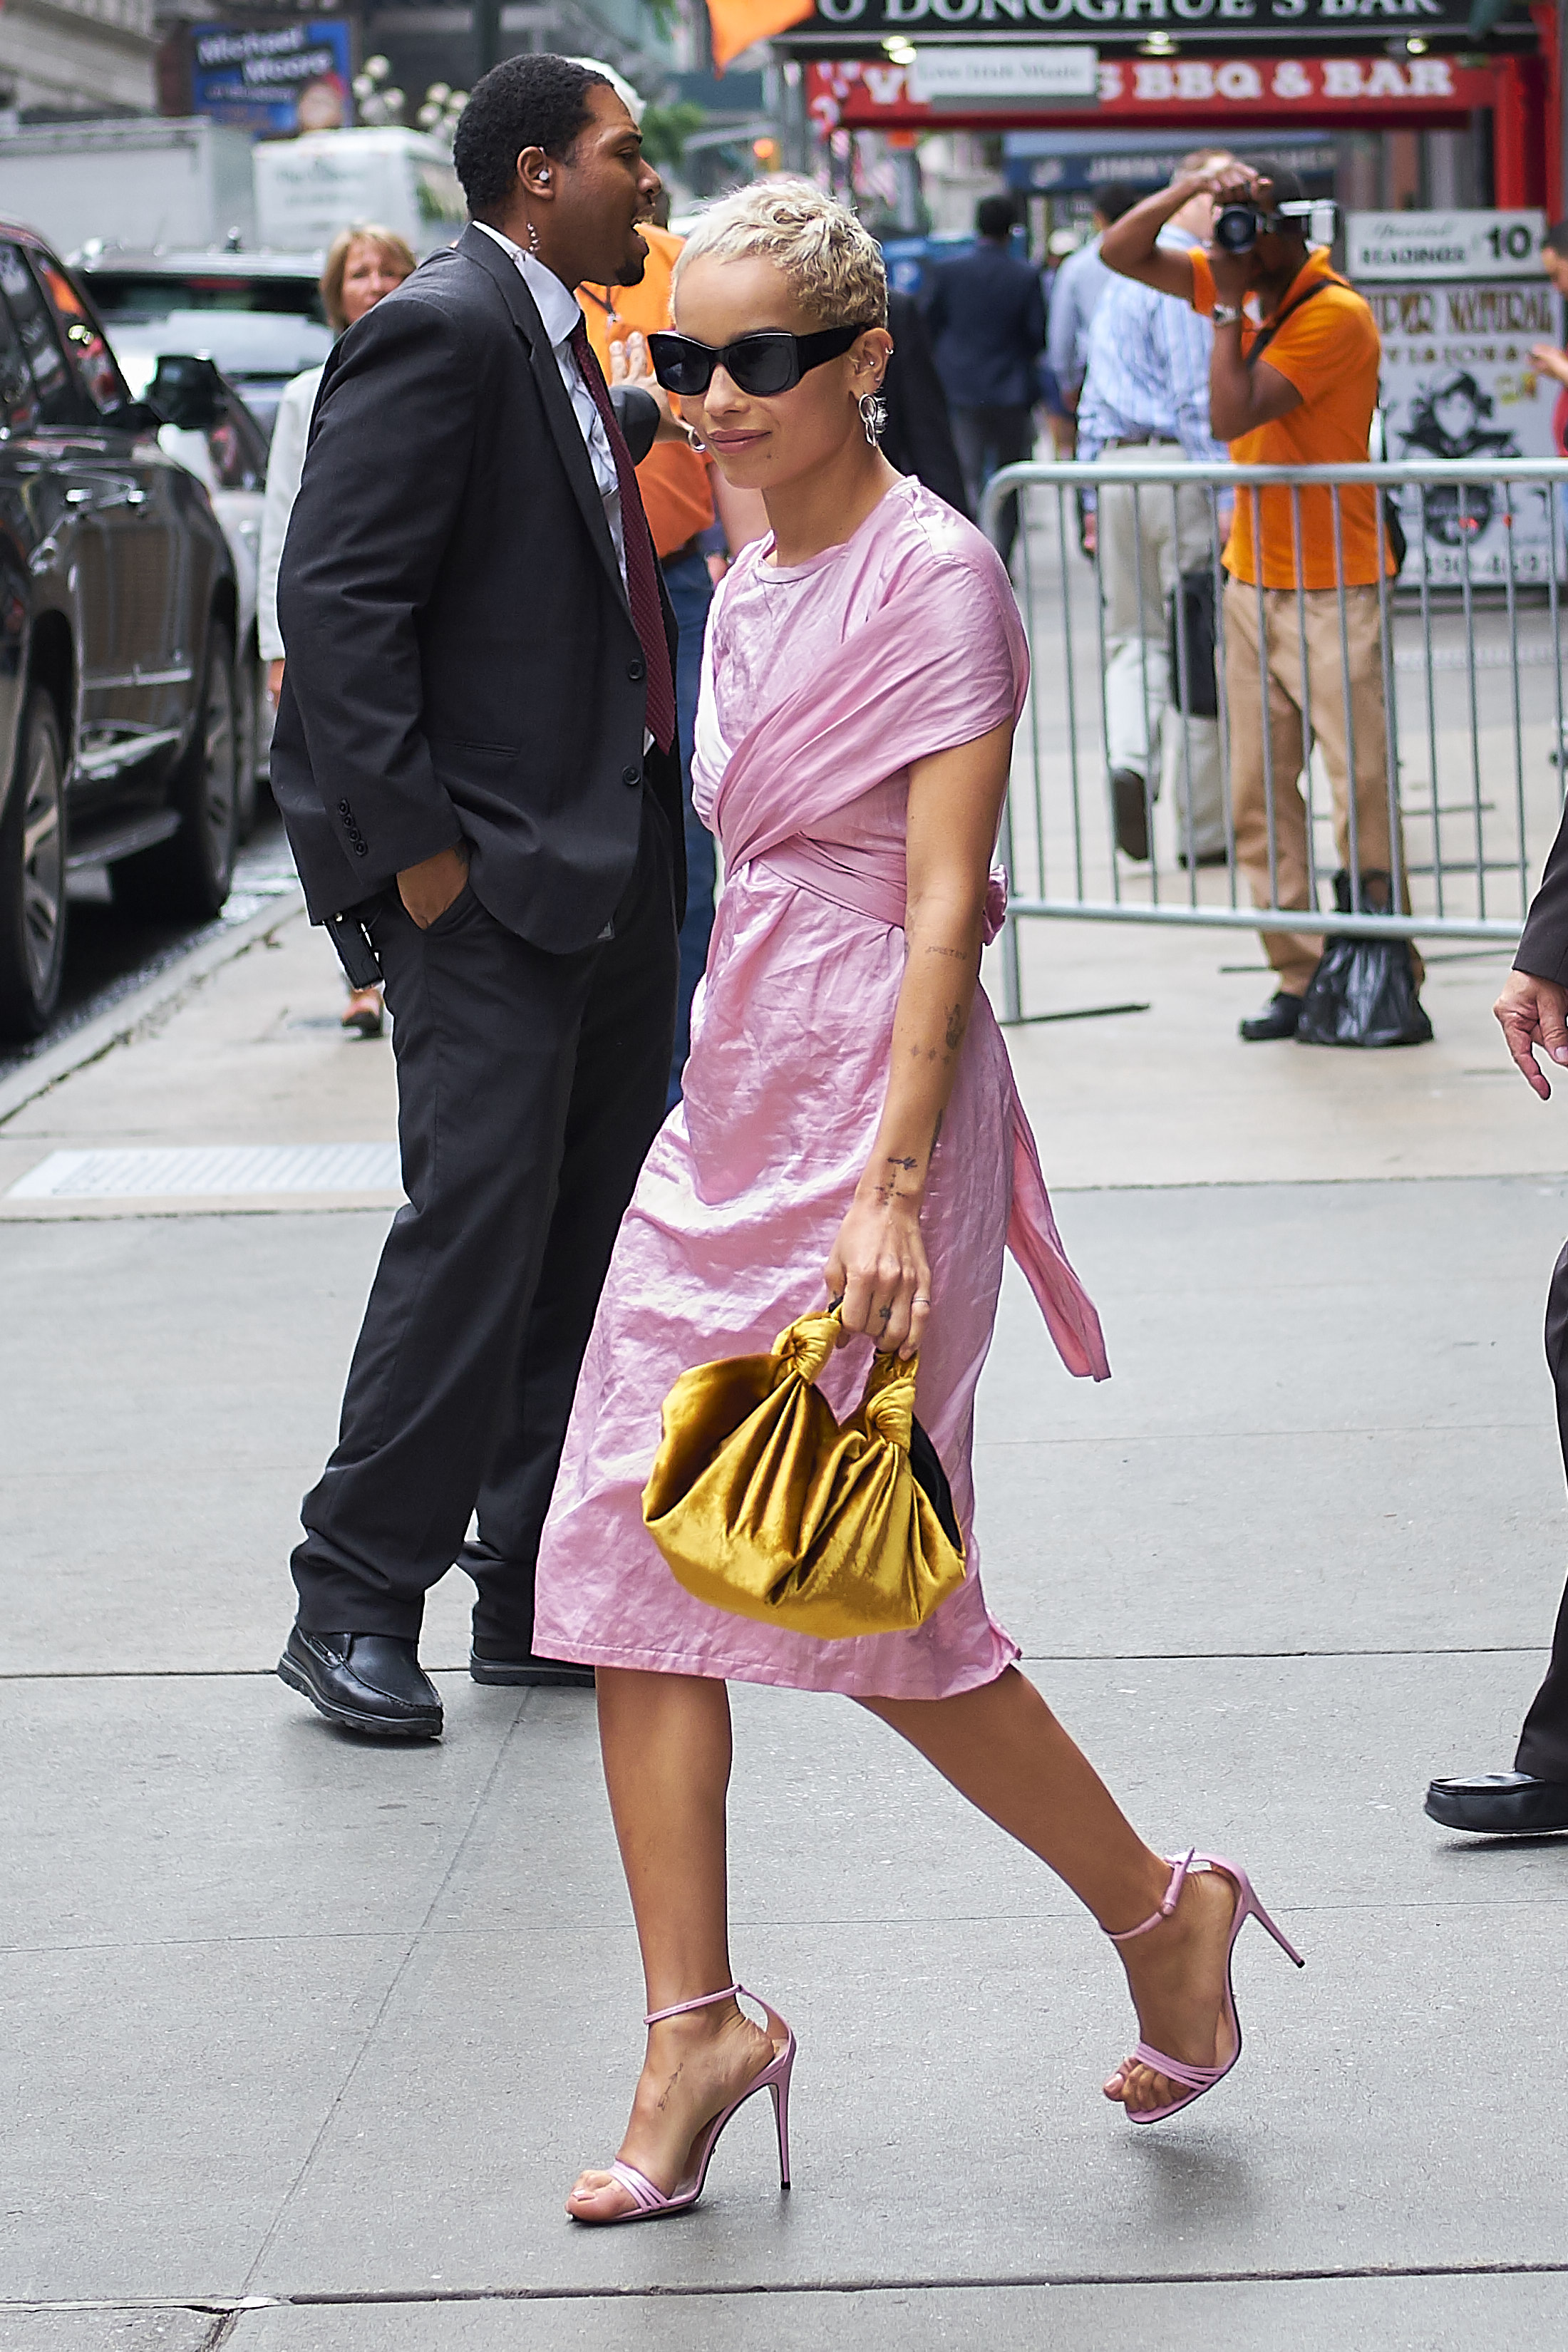 Zoe Kravitz is seen wearing pink while out and about in New York City, NY. <P> Pictured: Zoe Kravitz <B>Ref: SPL1520308  150617  </B><BR/> Picture by: J. Webber / Splash News<BR/> </P><P> <B>Splash News and Pictures</B><BR/> Los Angeles:310-821-2666<BR/> New York:212-619-2666<BR/> London:870-934-2666<BR/> <span id=